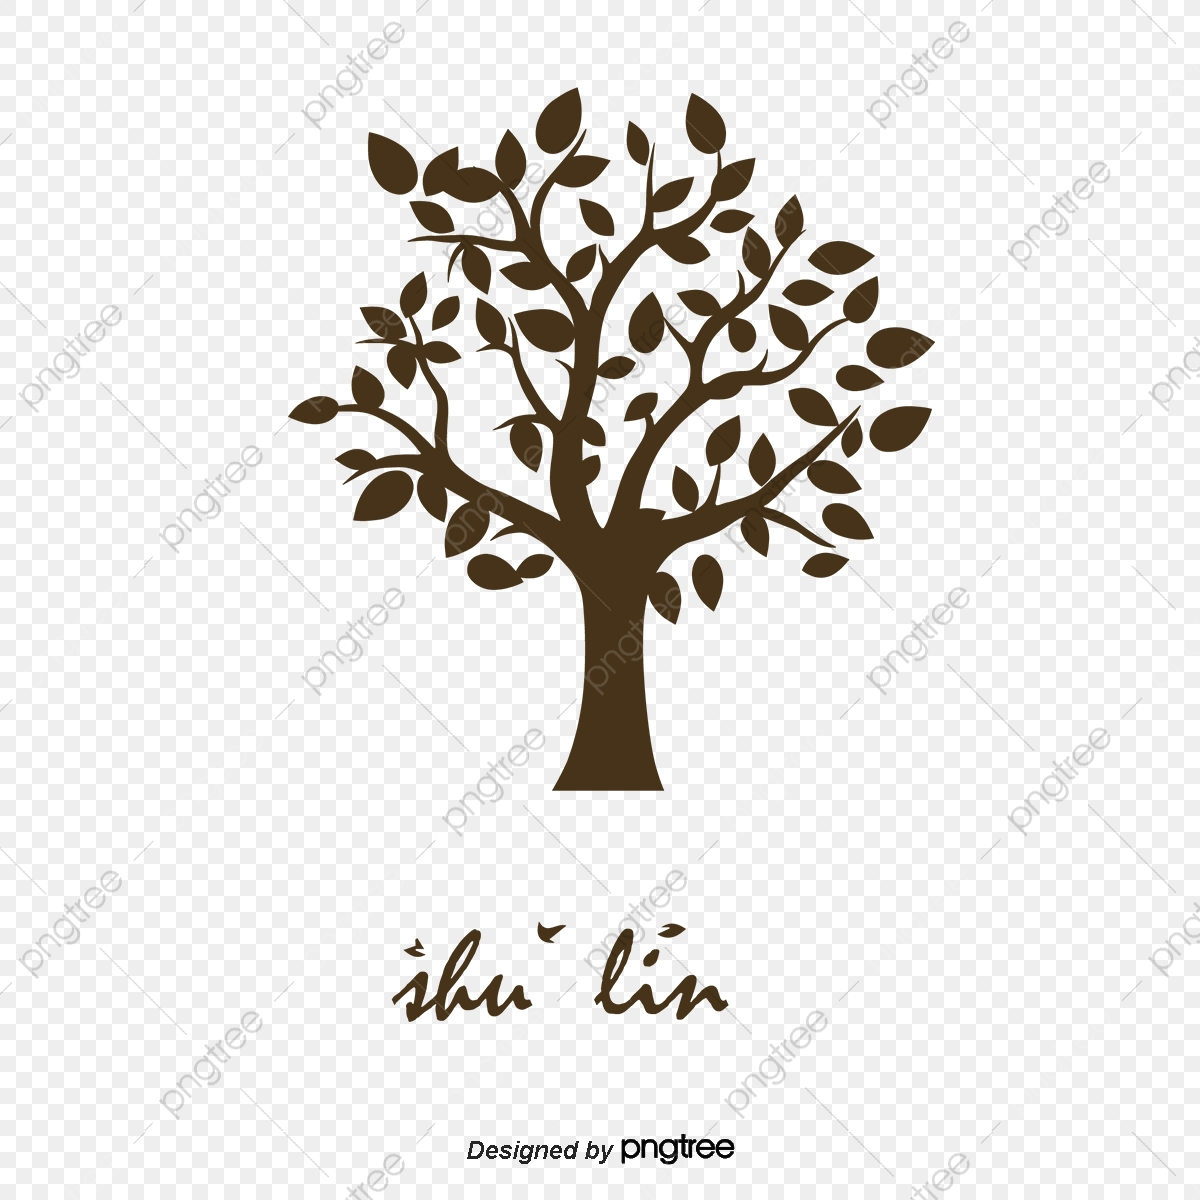 Tree Health Png - Tree Of Life, Green, Icon, Health PNG Transparent Clipart Image ...